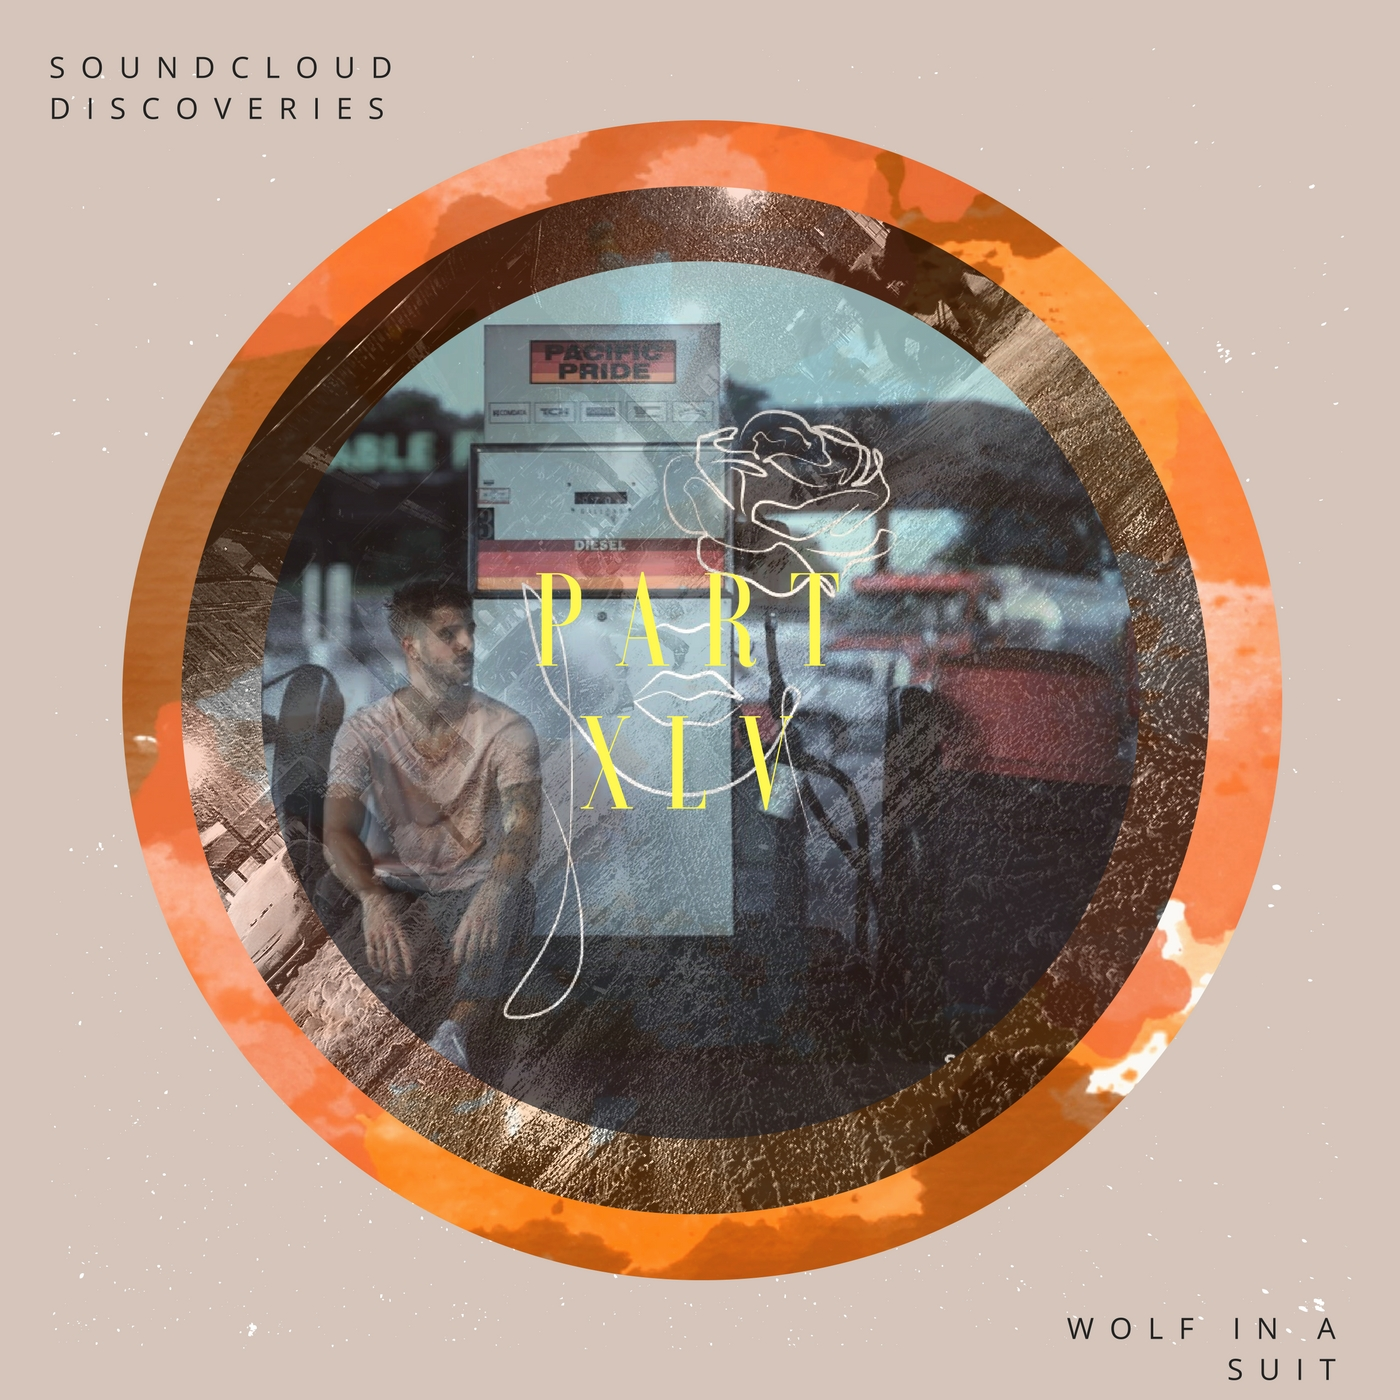 playlist-soundcloud discoveries part xlv-indie pop-indie rock-indie folk-new music-music blog-indie blog-wolfinasuit-wolf in a suit